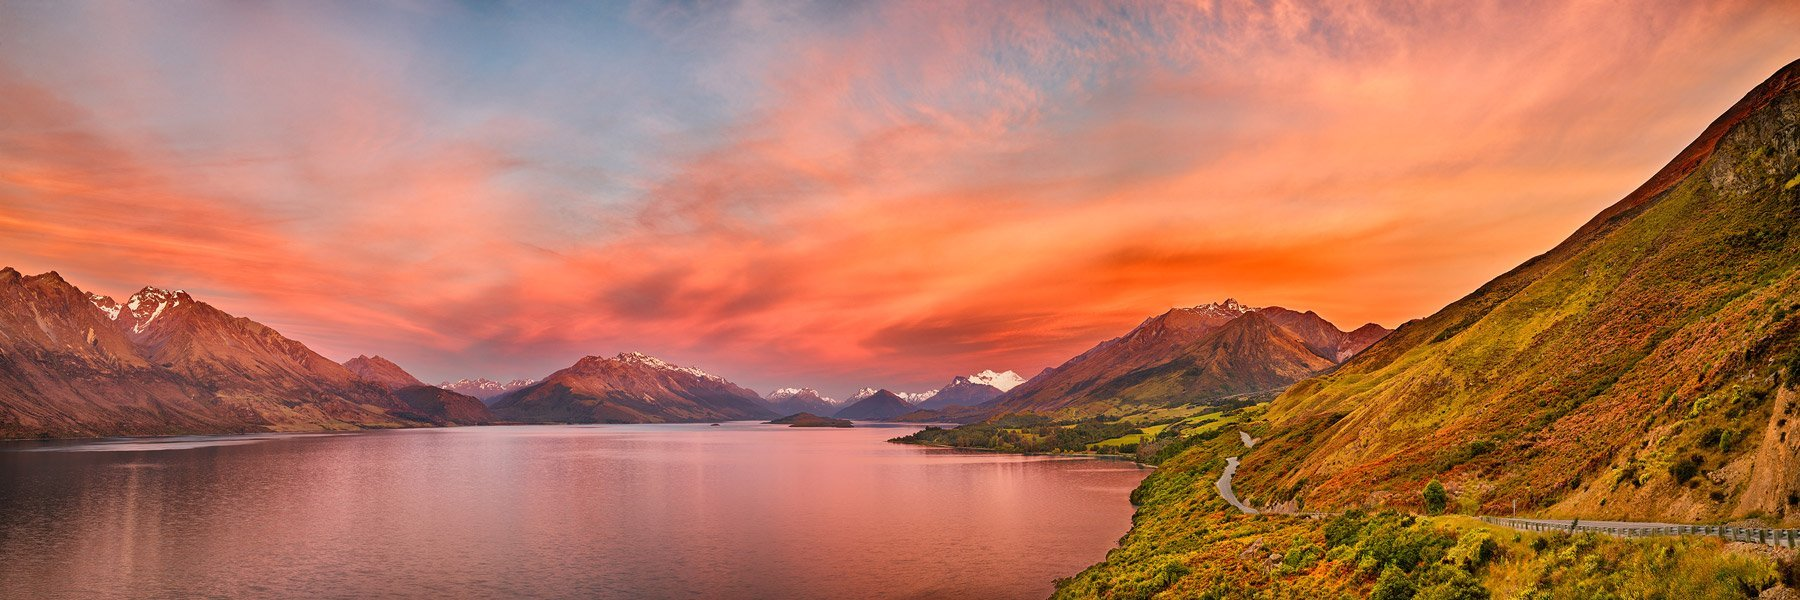 The setting sun igniting the sky with glorious amber hues, Lake Wakatipu, Queenstown, New Zealand.